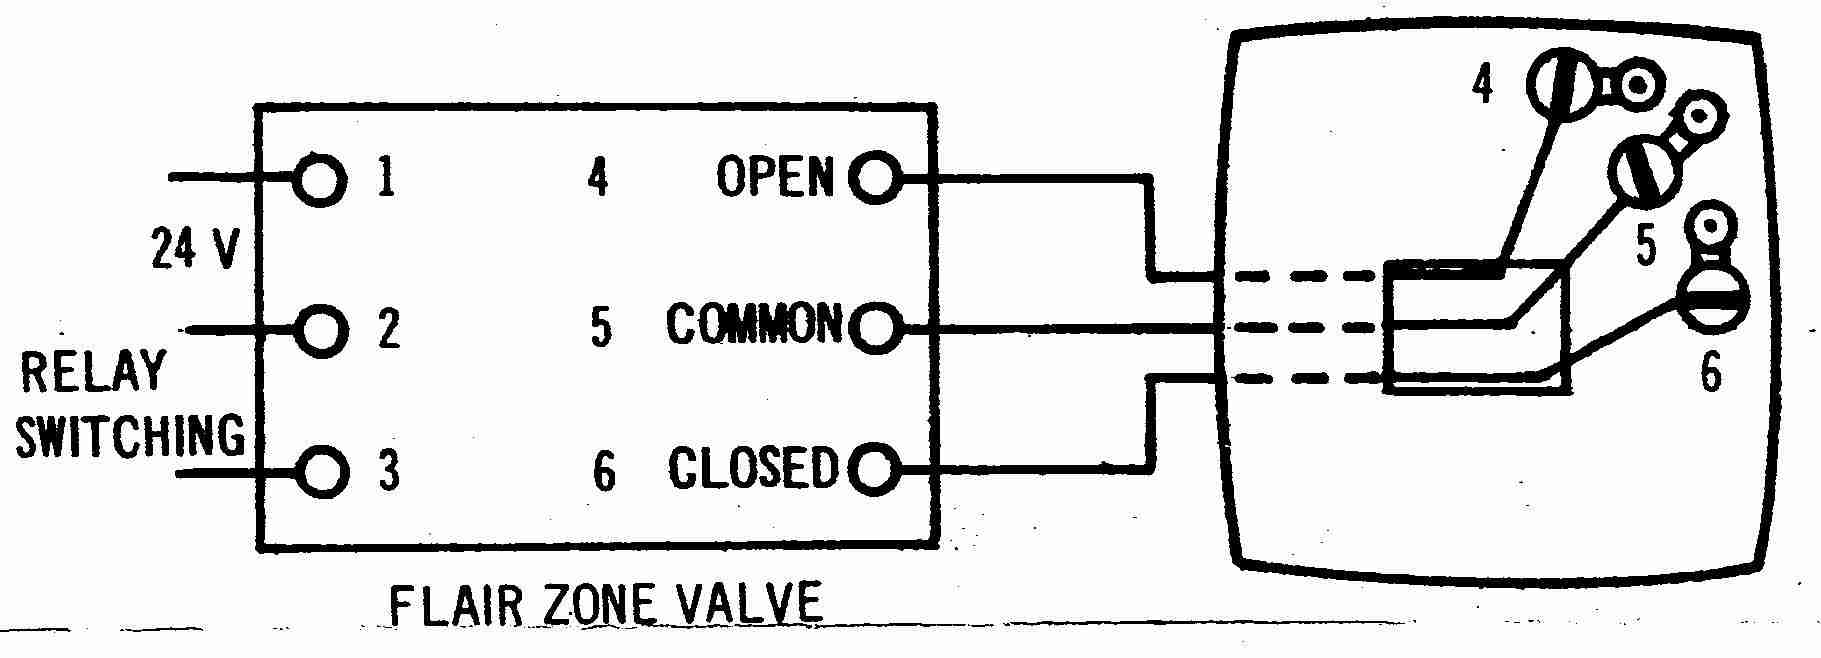 Wiring Diagram For Honeywell Zone Valves Diy Enthusiasts Thermostat Th3210d1004 Valve Installation Instructions Guide To Heating Rh Inspectapedia Com Schematic Troubleshooting